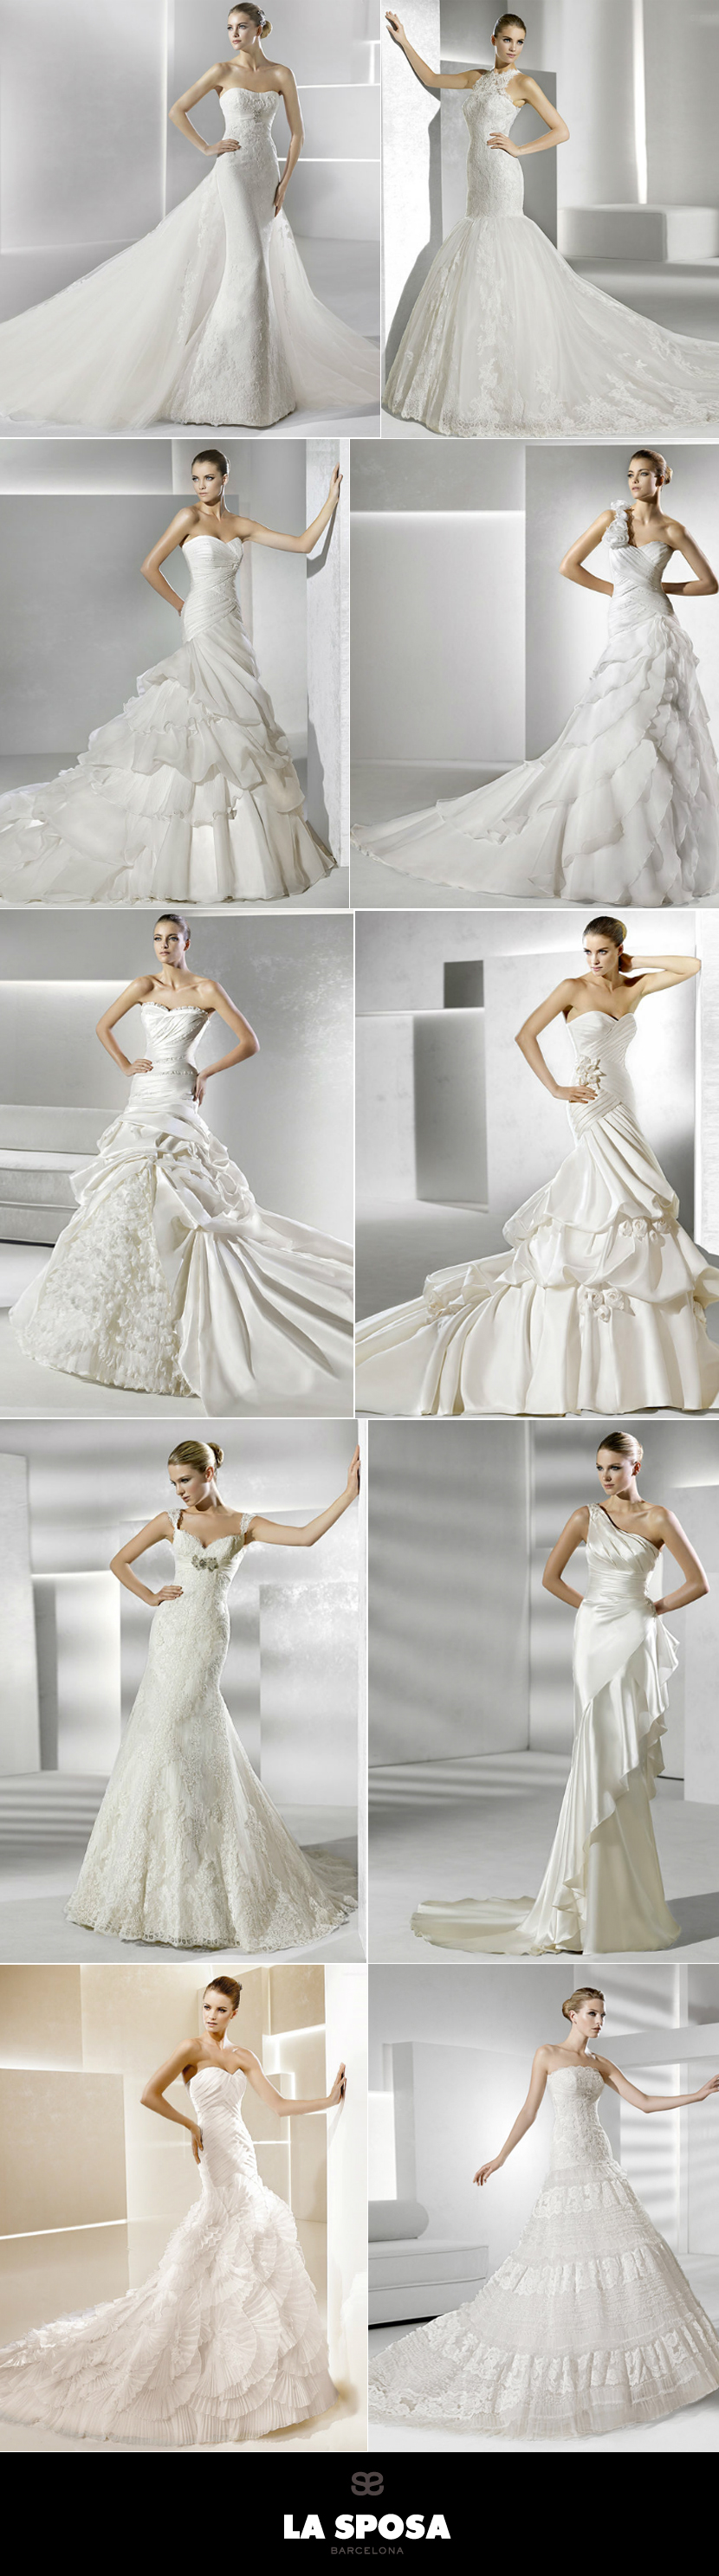 La Sposa 2012 Collection Moliere Bridal Oklahoma City